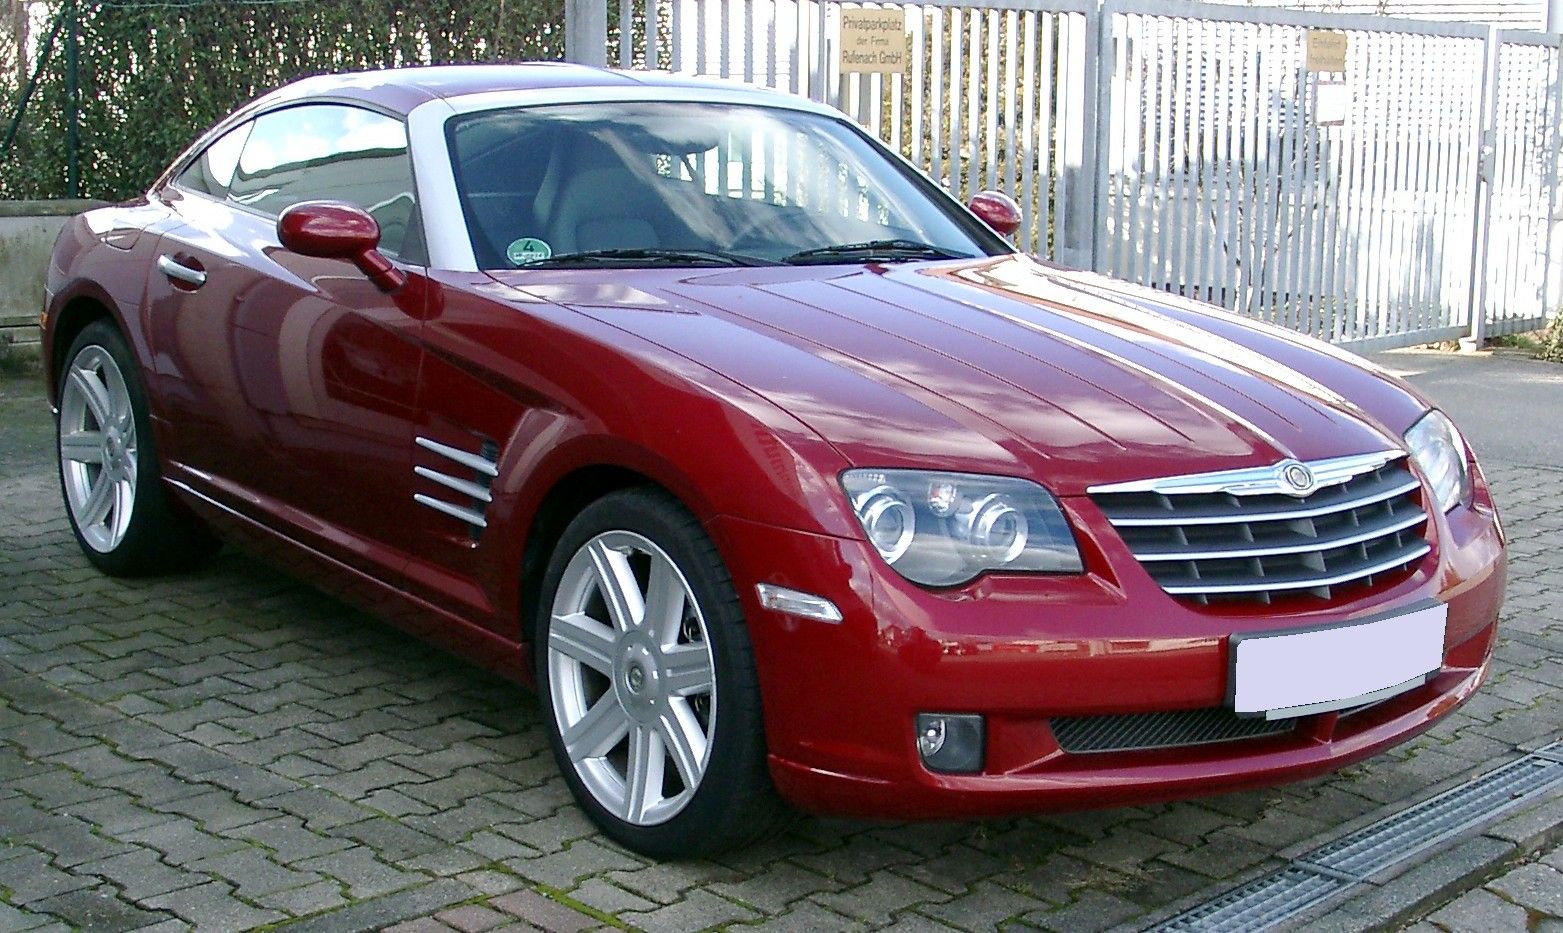 Chrysler Crossfire Pictures Beautiful Cool Cars Wallpapers